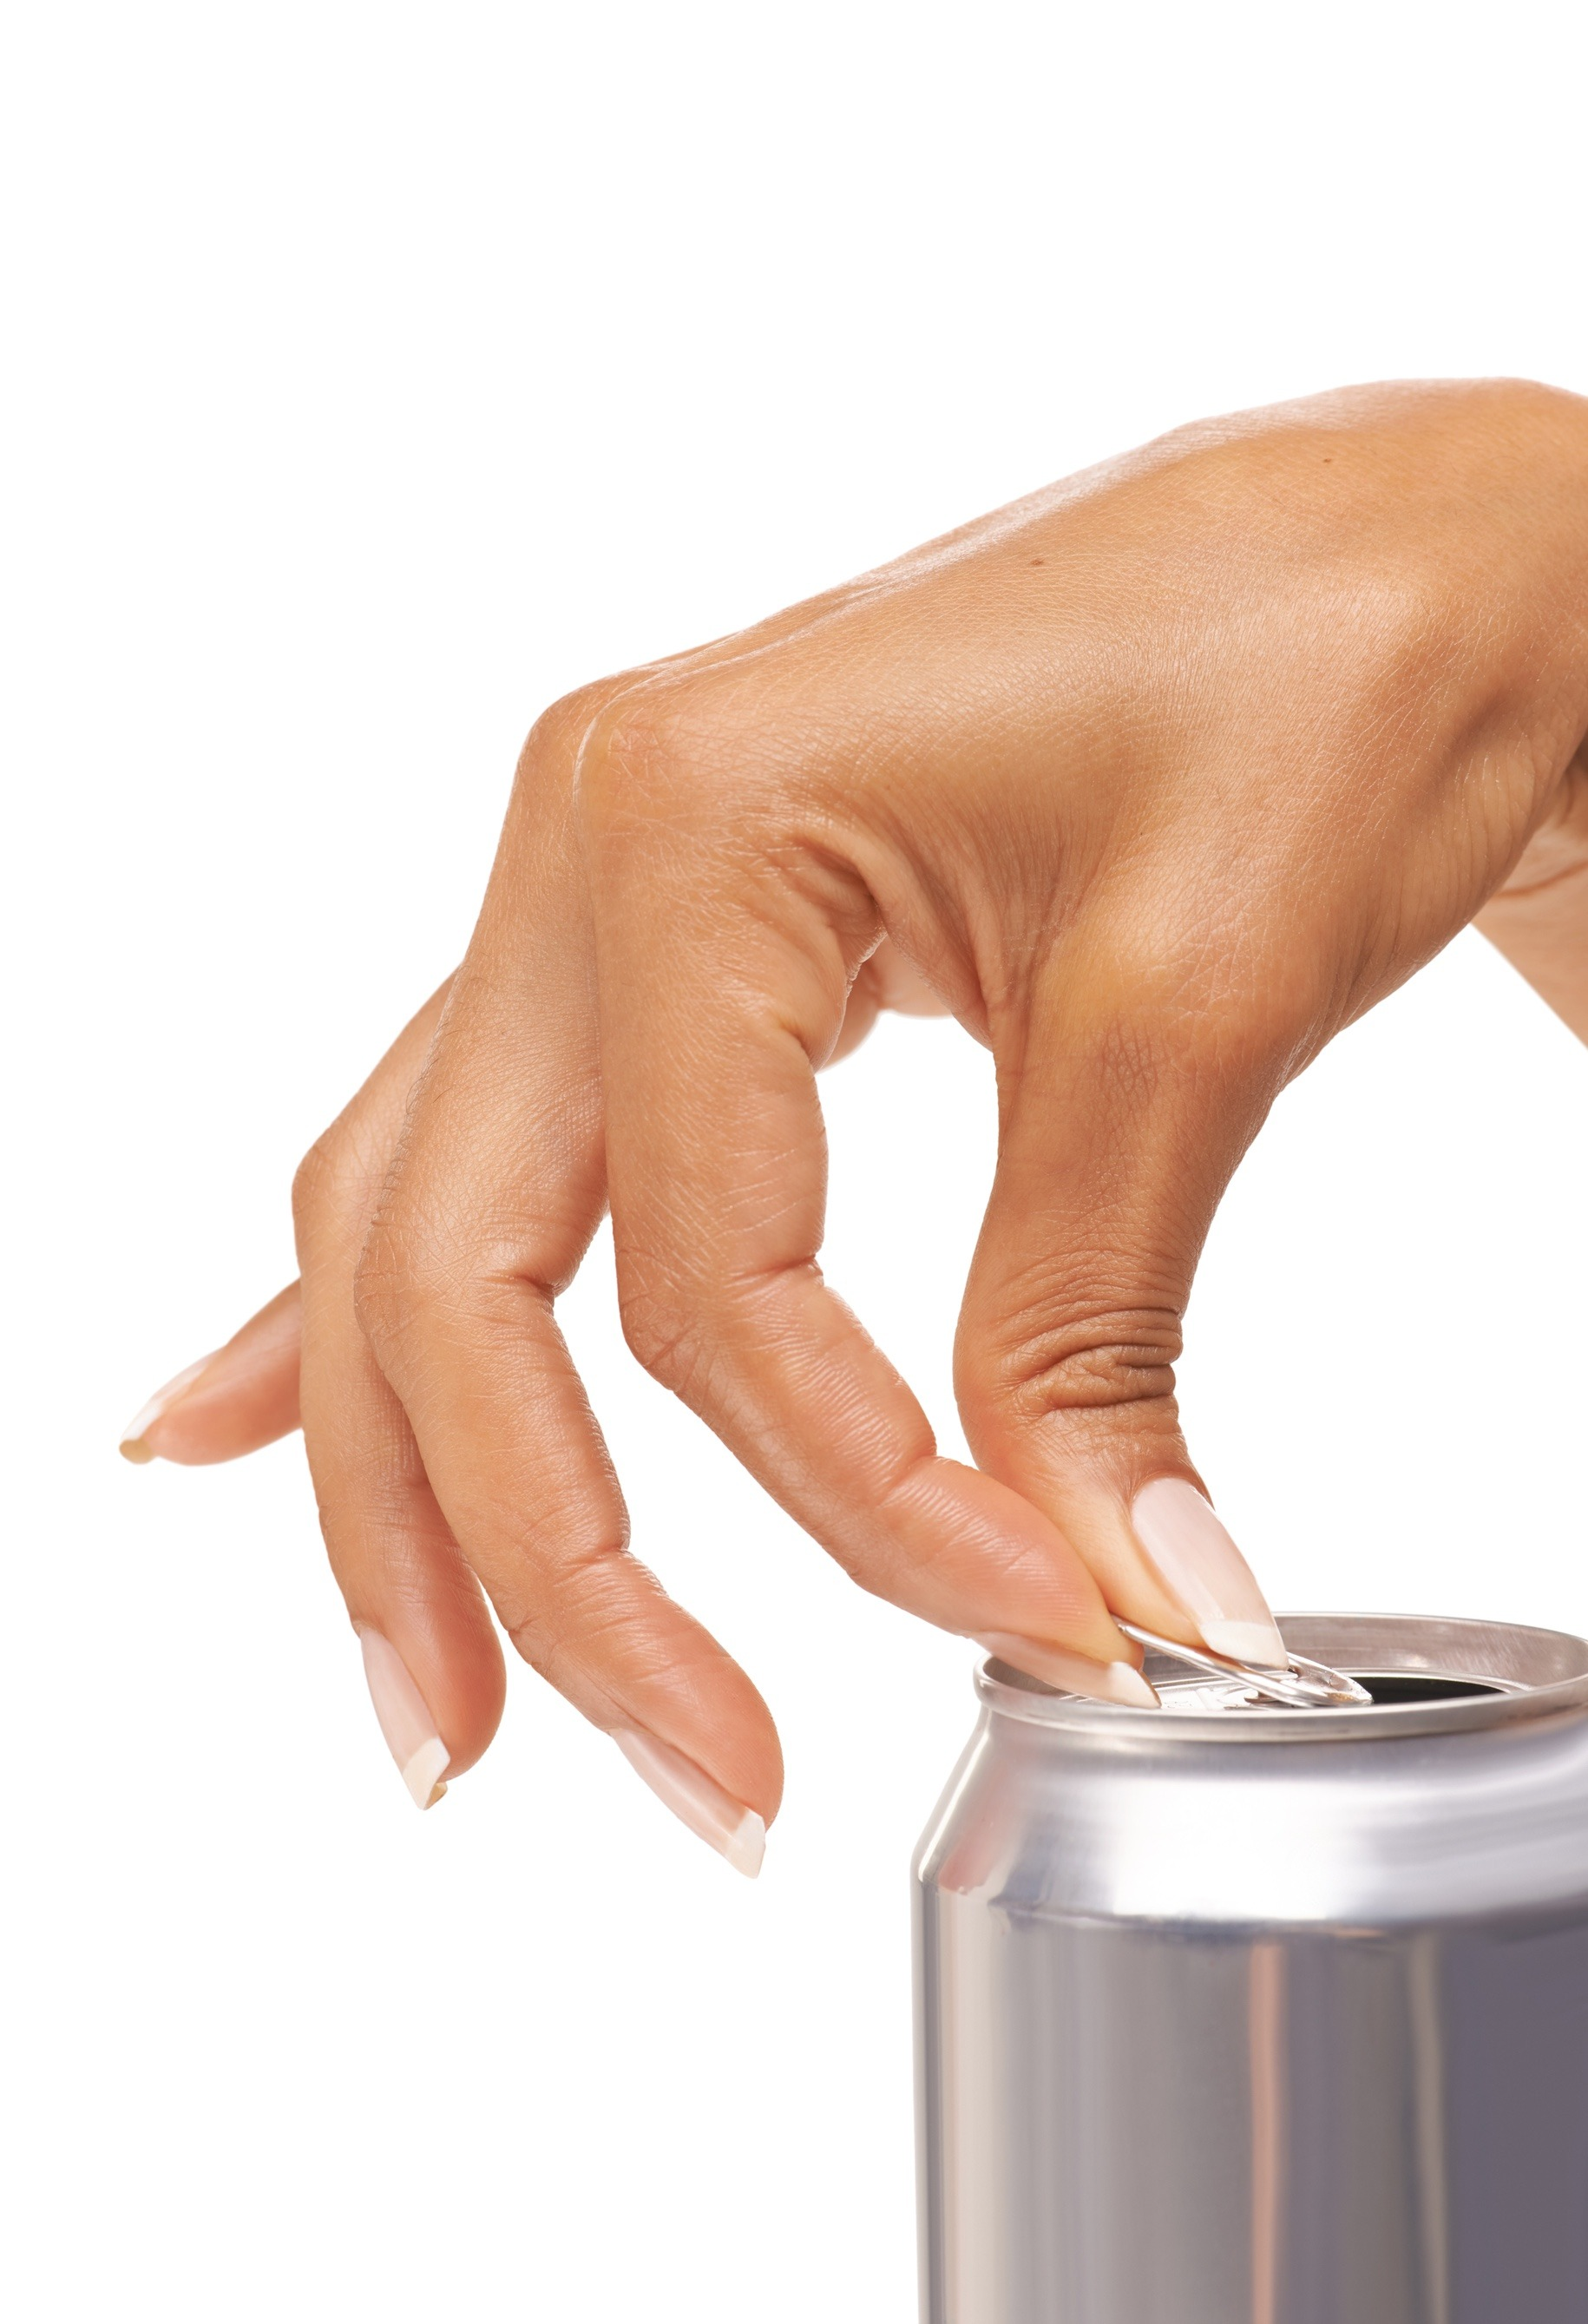 There's nothing quite like the sound of opening a soda can